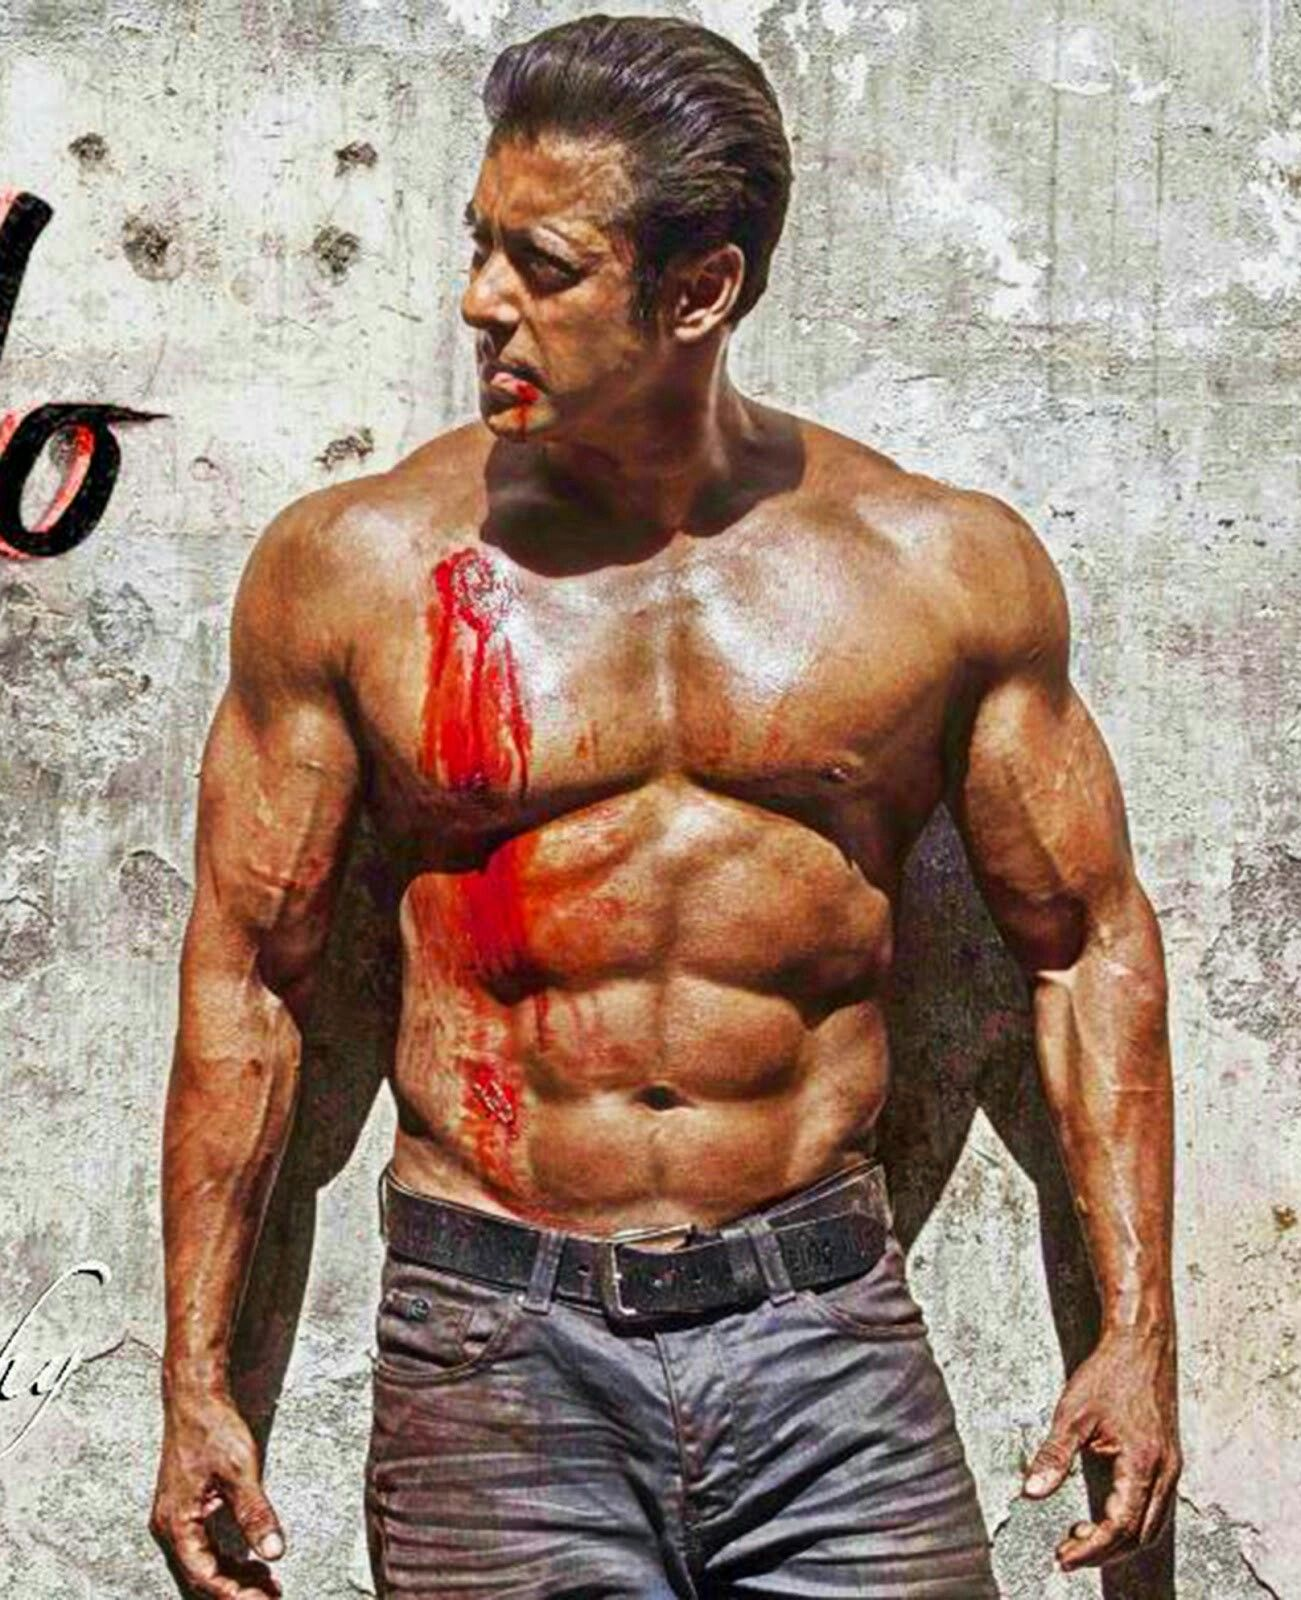 Bollywood's Biggest Star Denounces Steroid Use